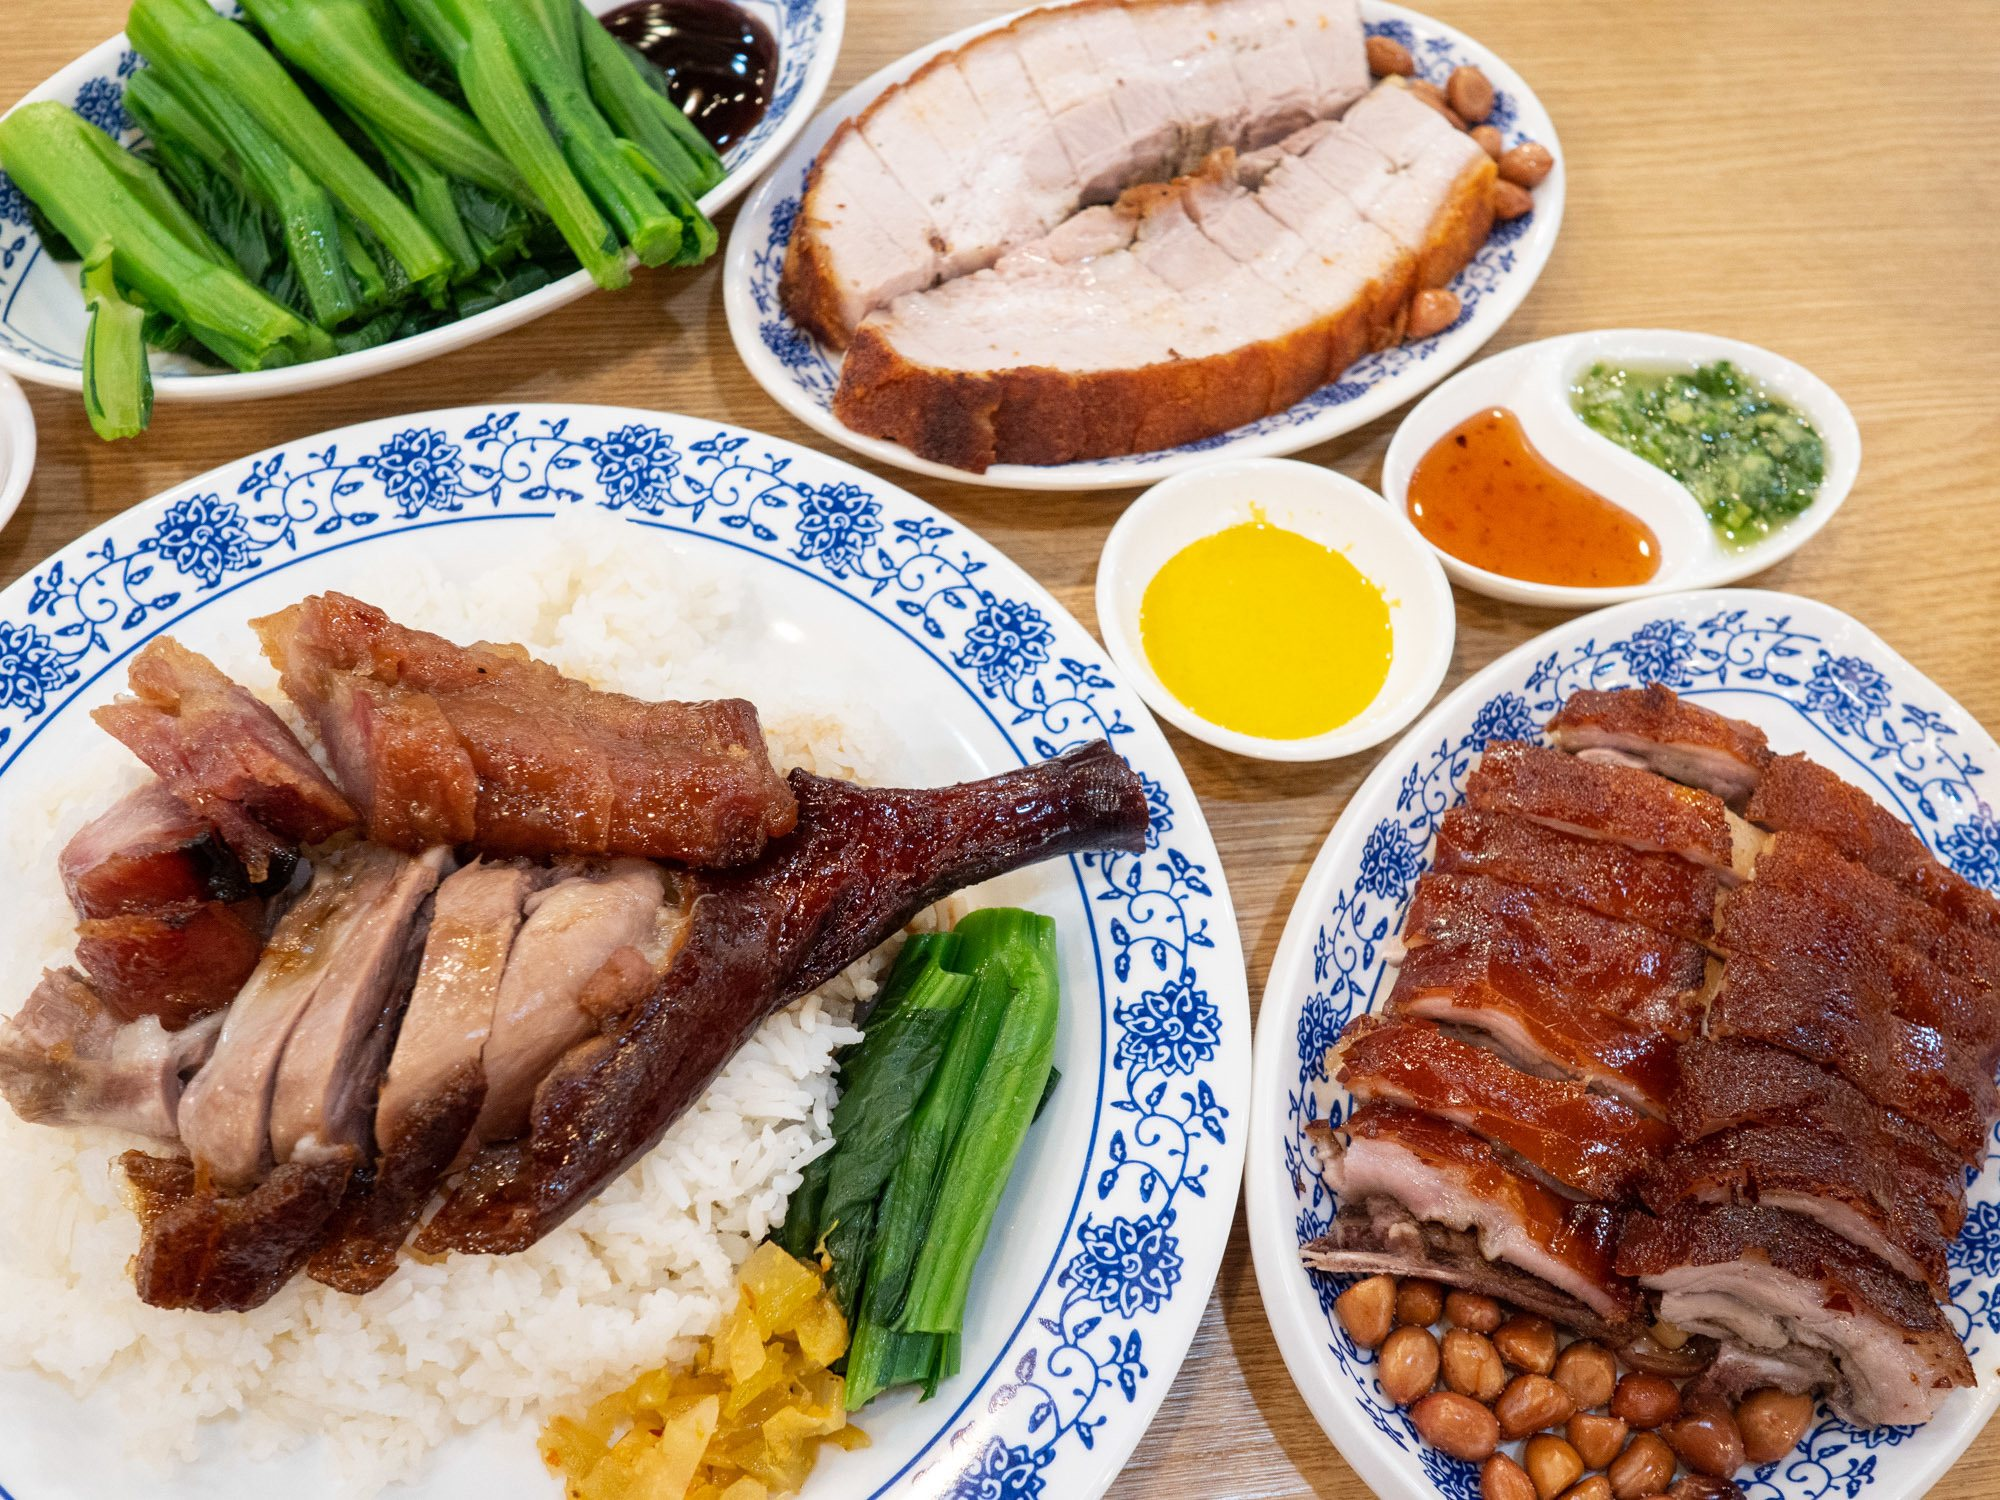 Ki's roast goose with the suckling pig in hong kong